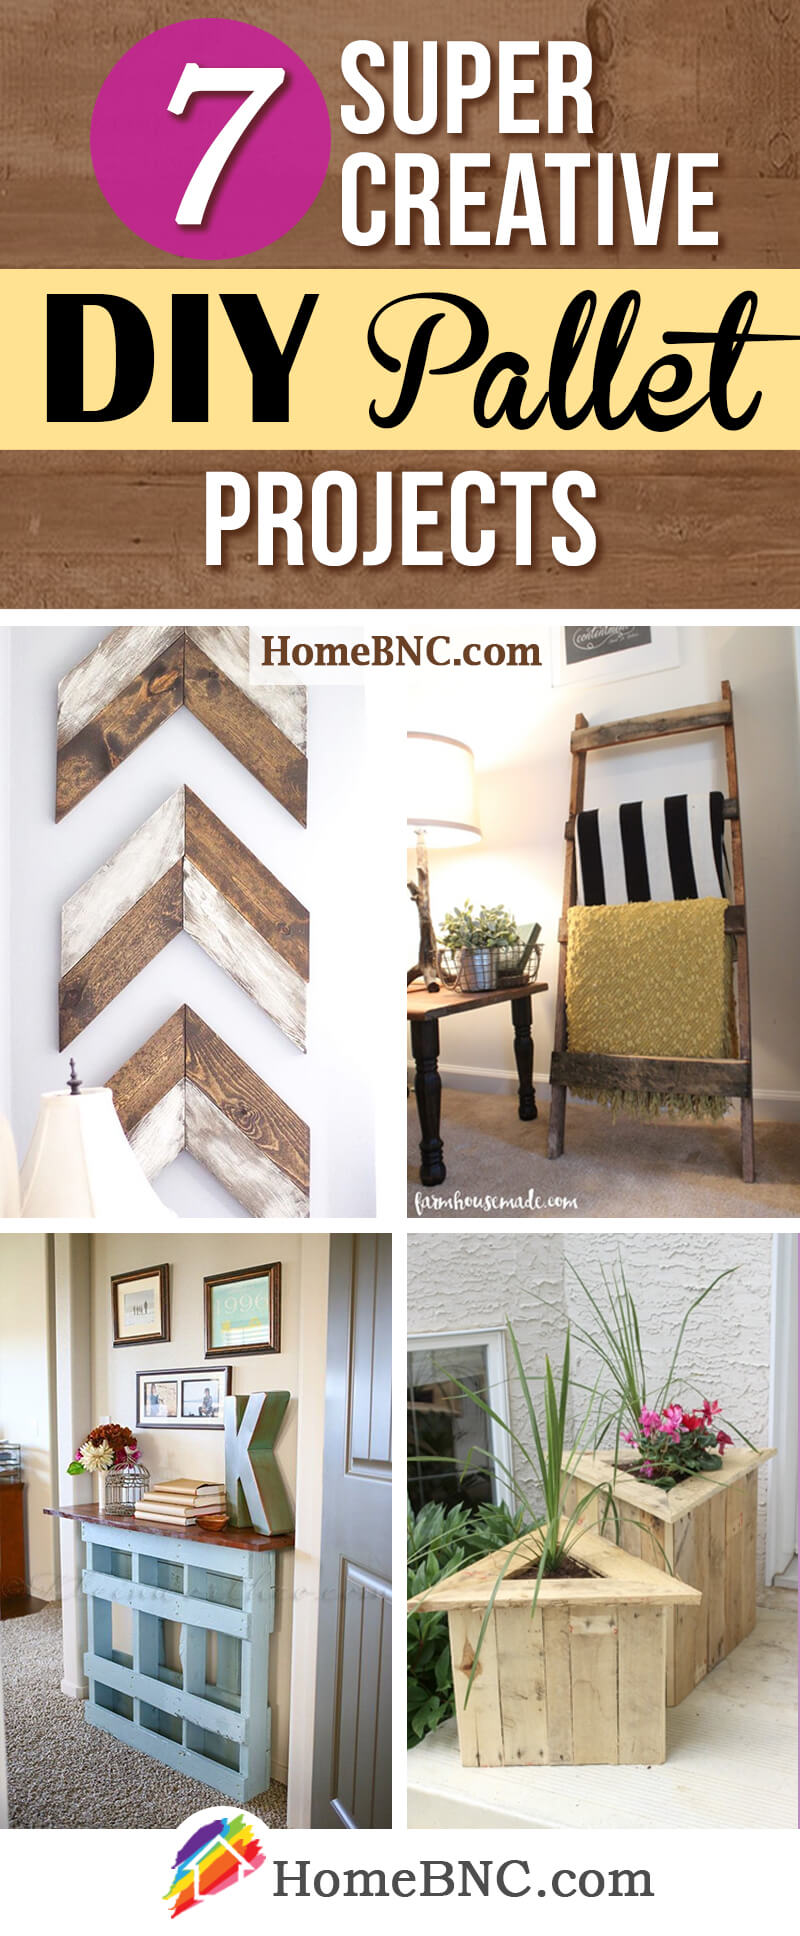 DIY Pallet Project Ideas